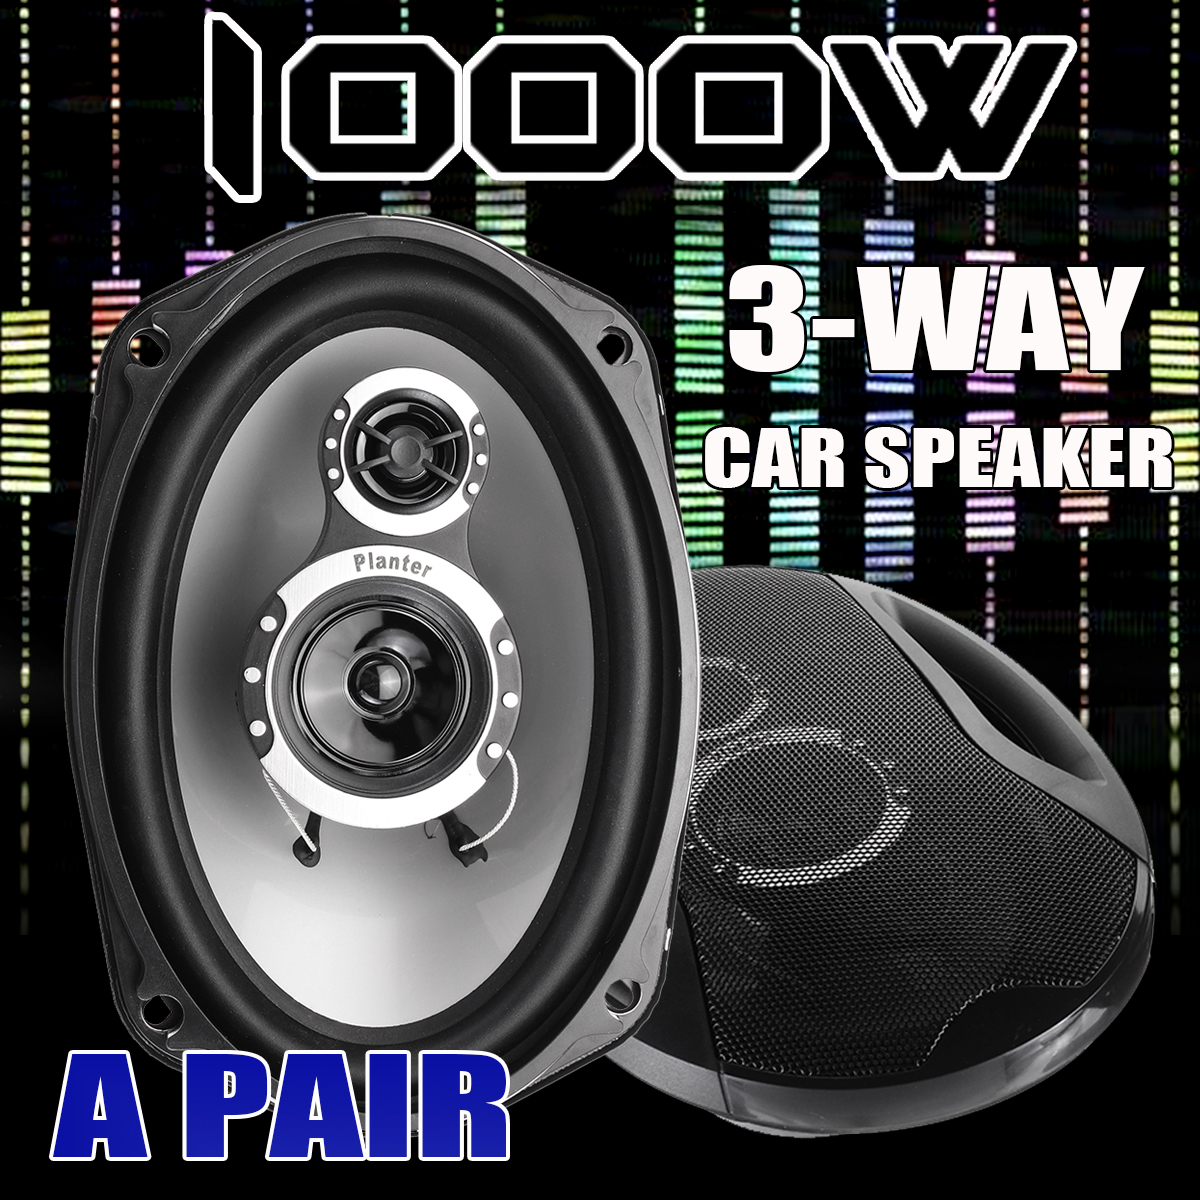 A Pair 6x9 Inch 3-Way Twin Tone Auto Car Door Shelf Coaxial Speakers 12V 1000W High Frequency Hifi Subwoofers Sound Loudspeaker auto door component speakers a pair 2 way 2x180w 6x9 inch universal coaxial car speakers car audio stereo speaker